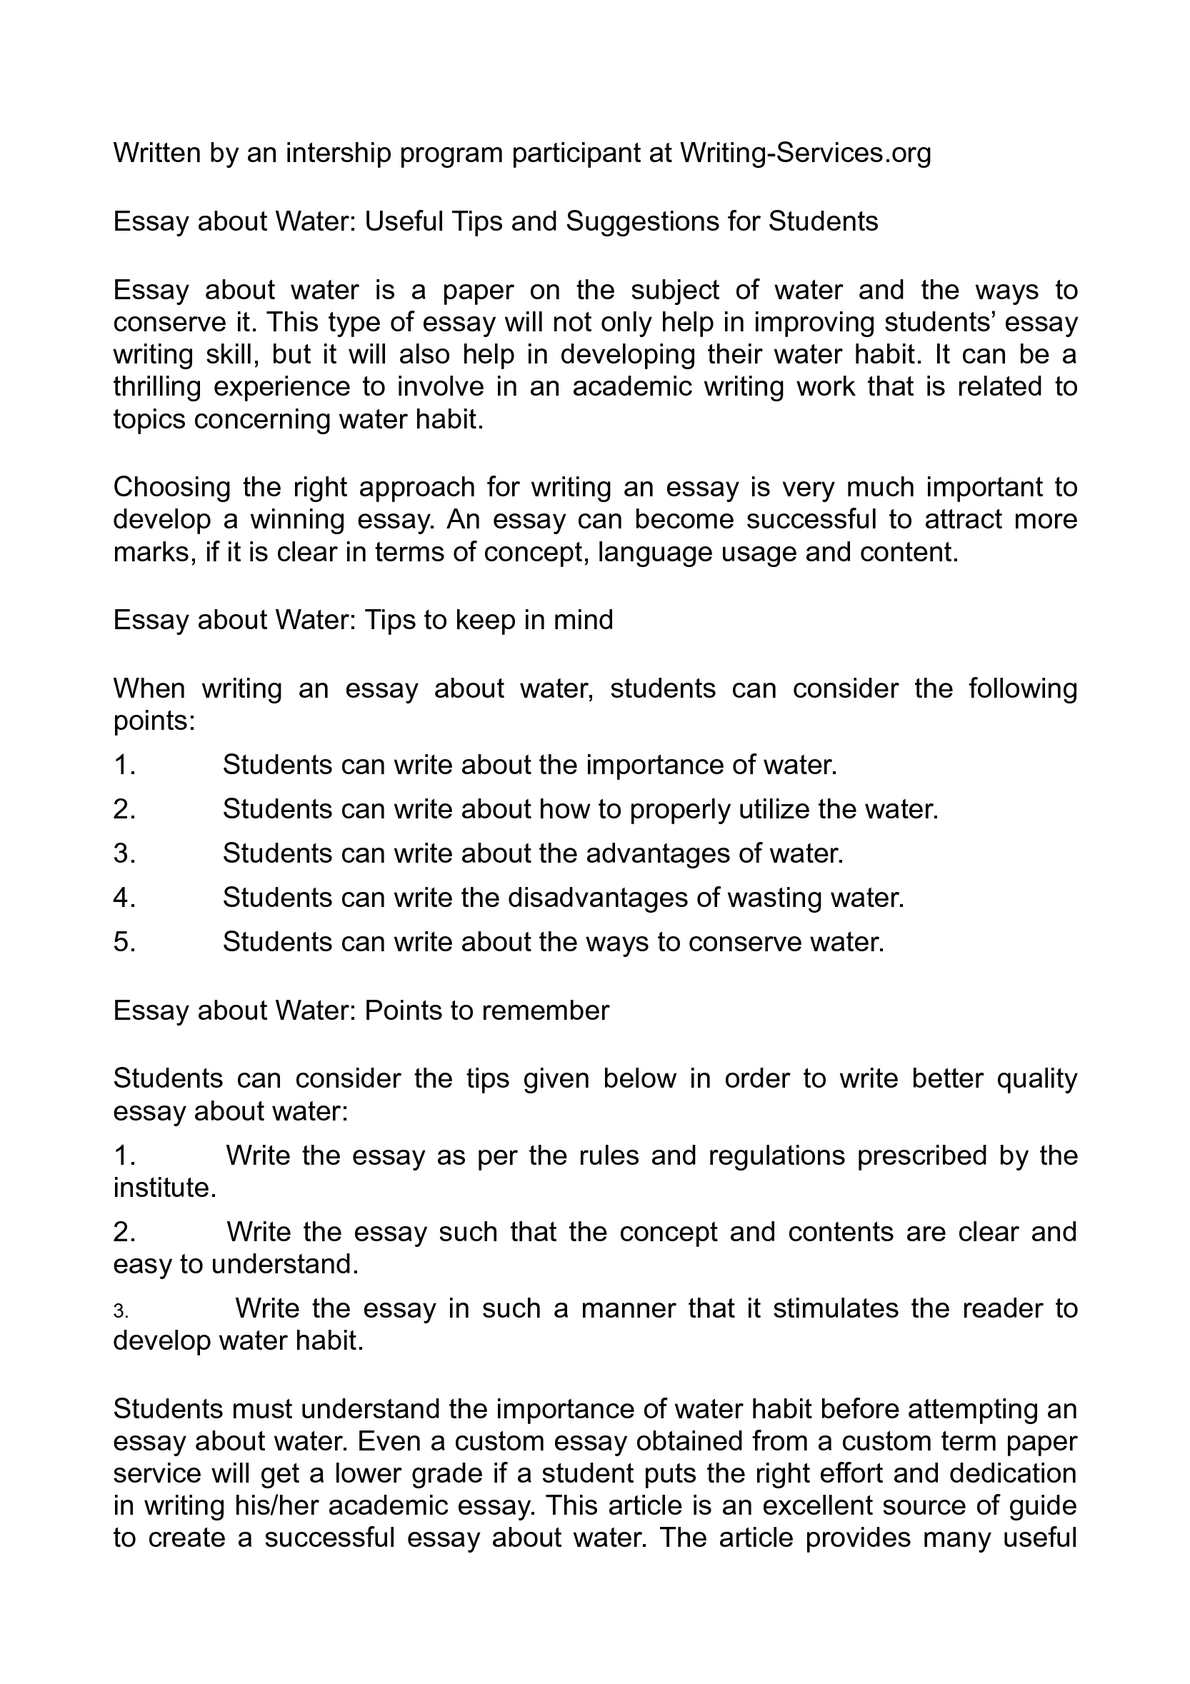 An essay about water